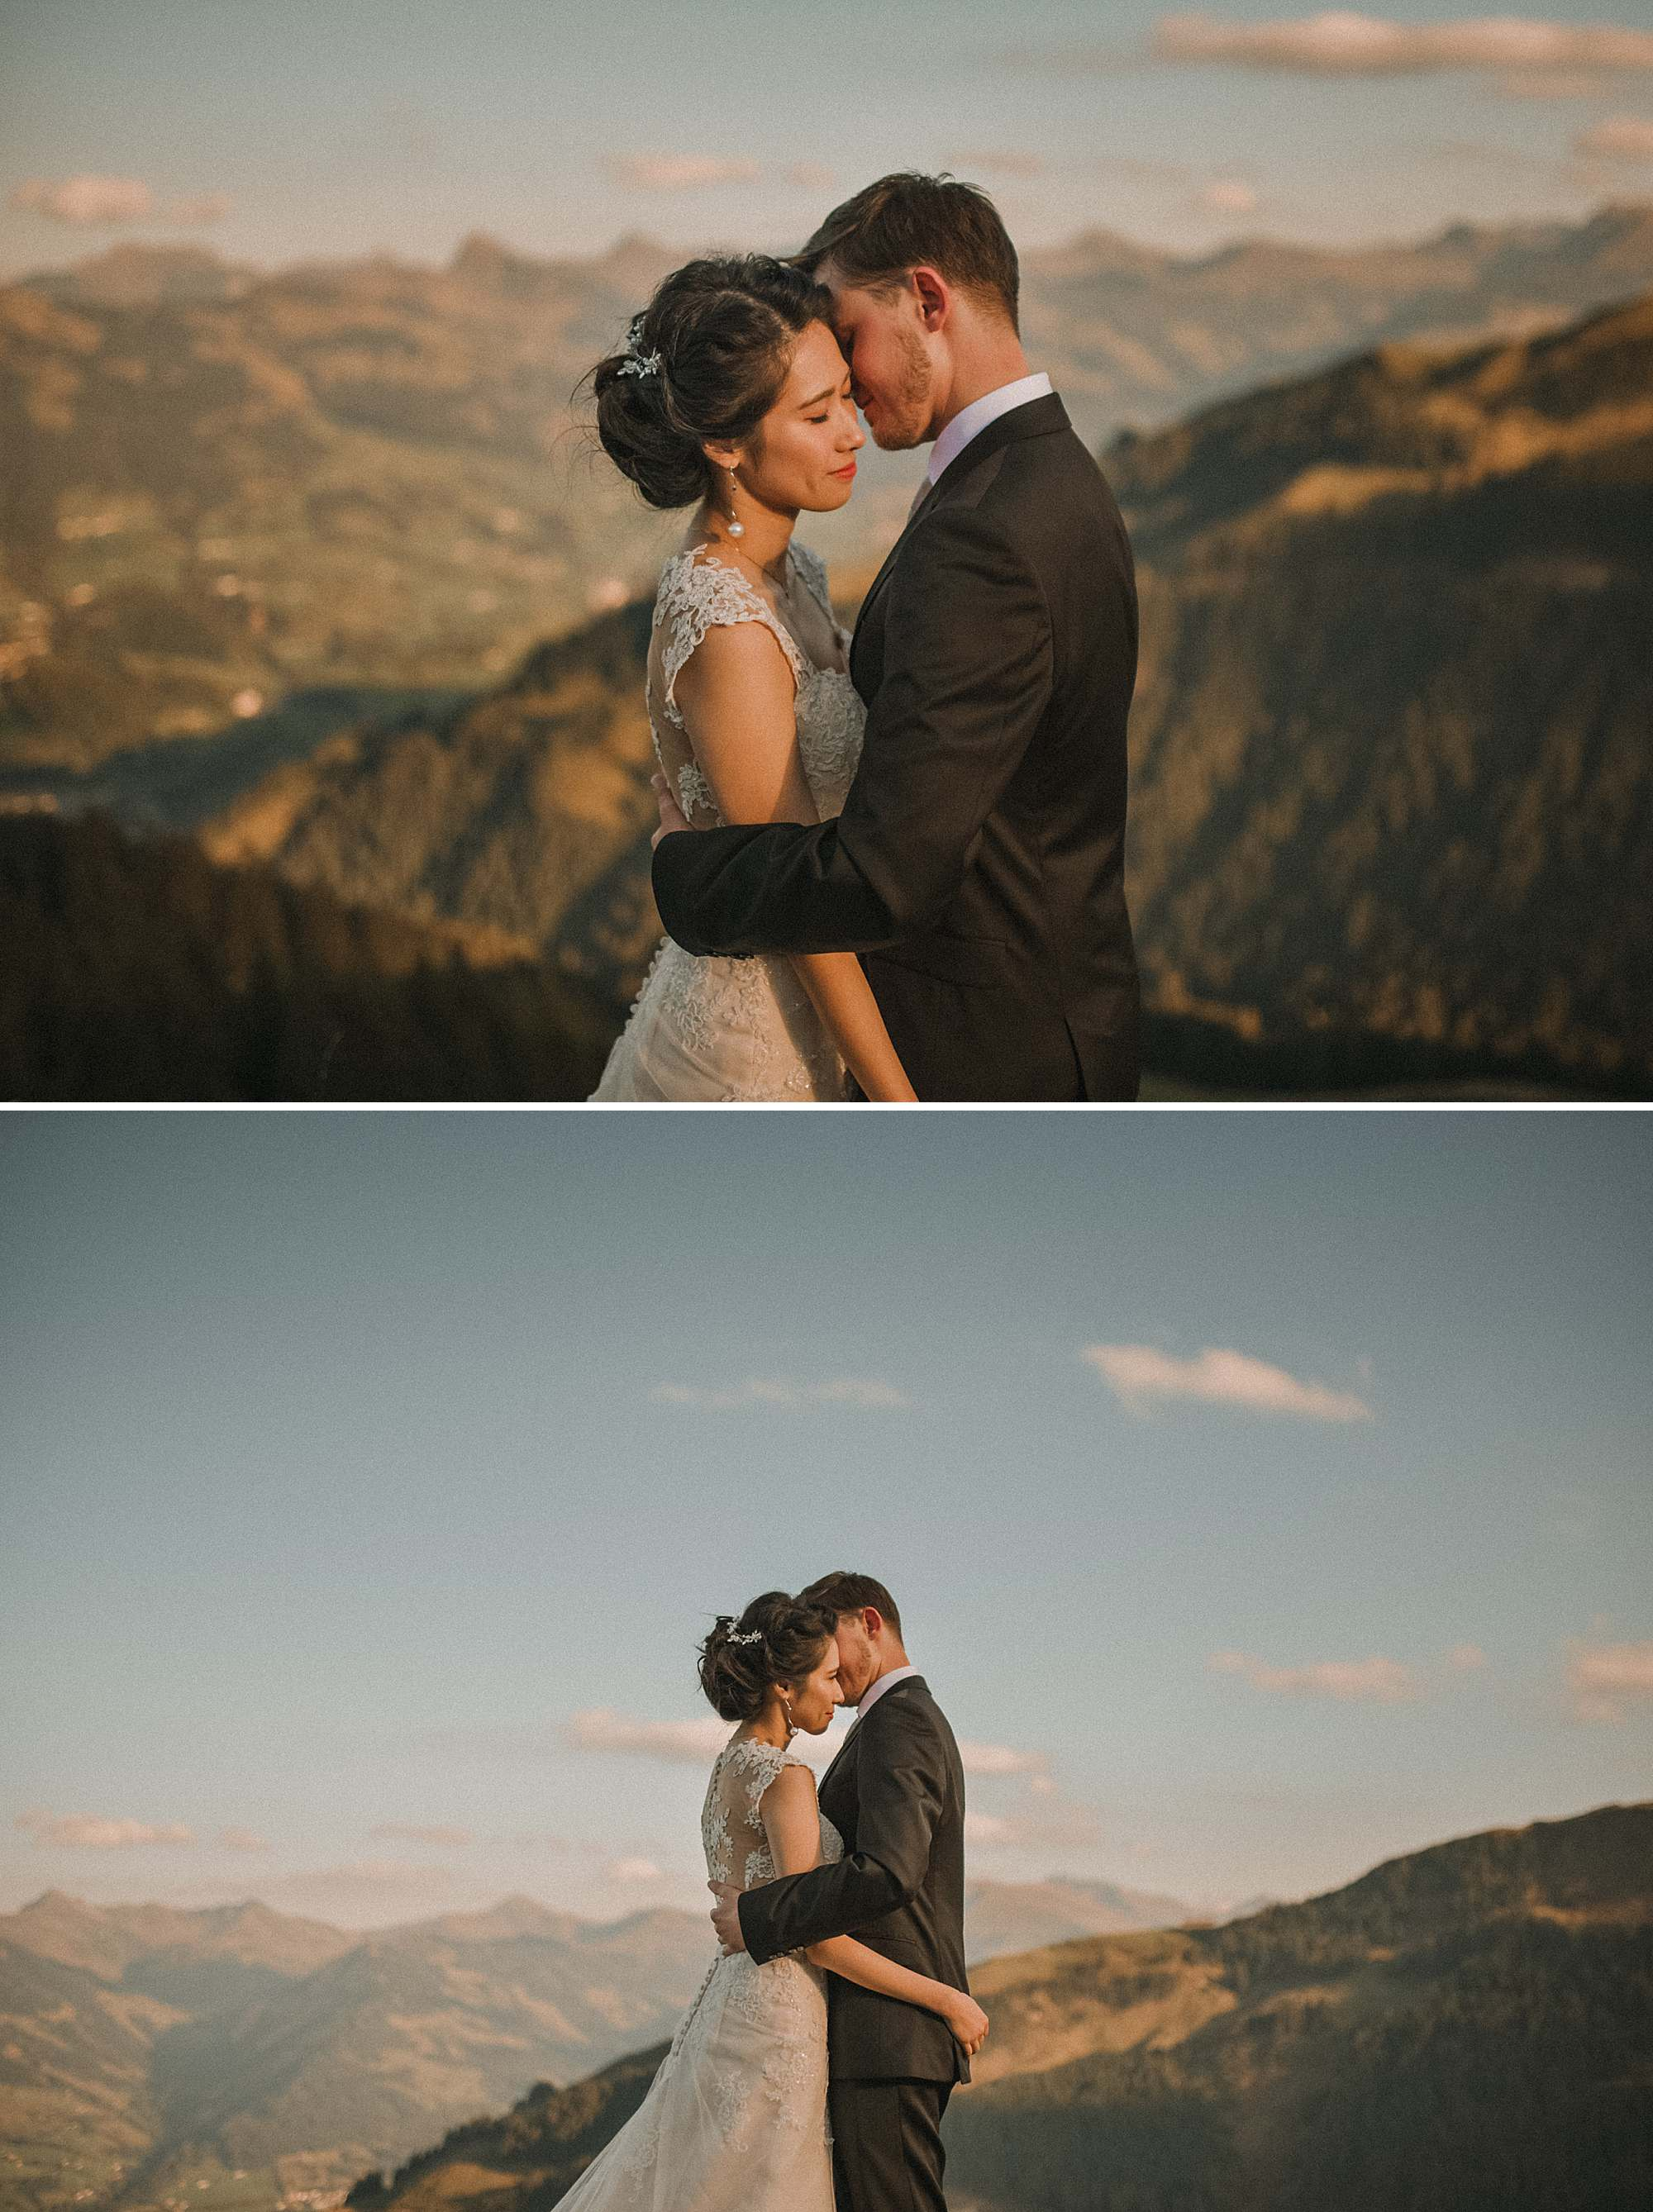 kitzbuehel wedding photographer_0078.jpg